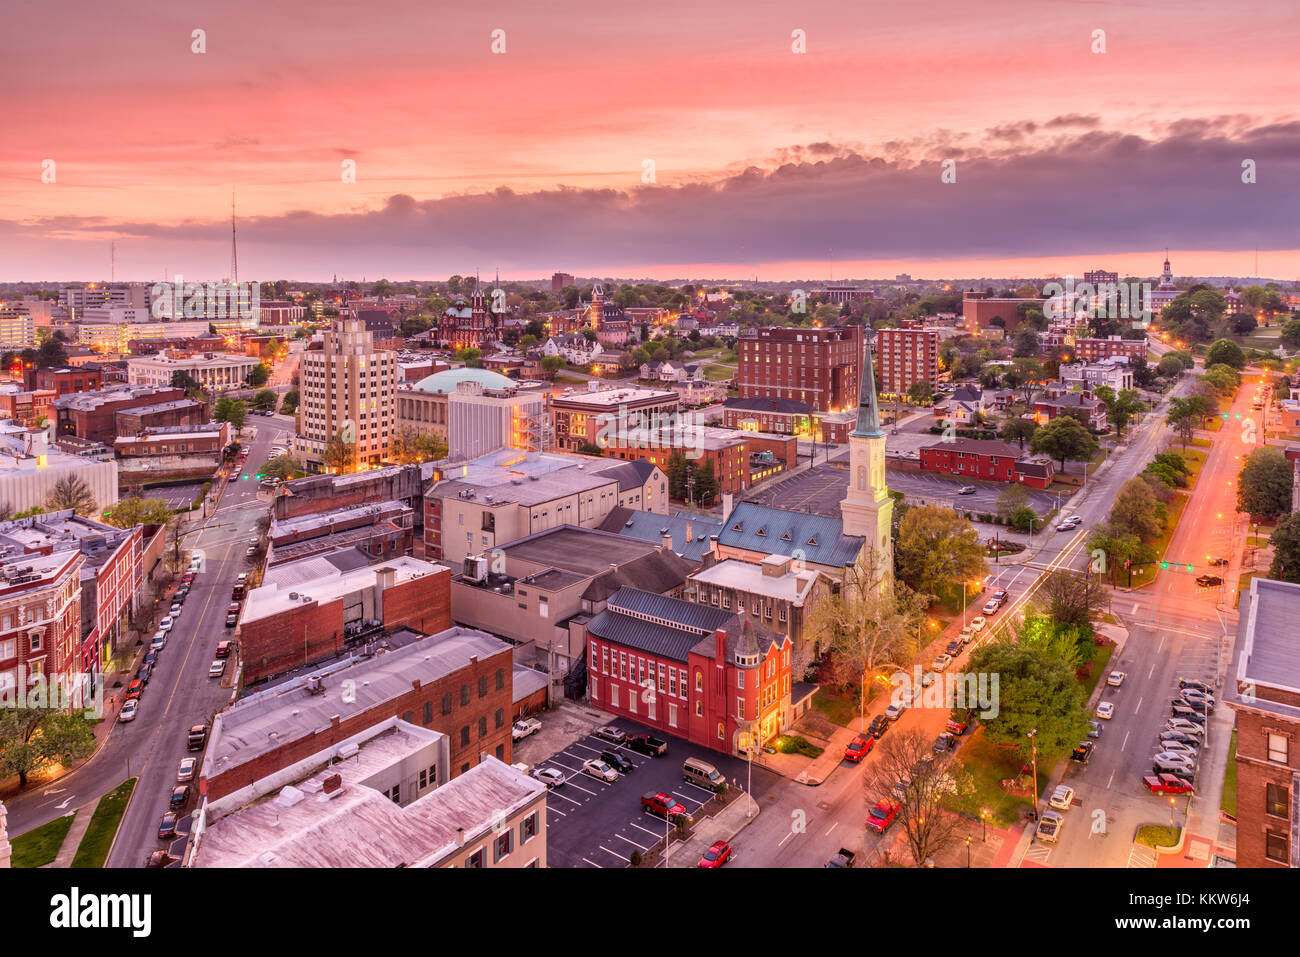 Macon, Georgia, USA downtown city skyline. - Stock Image